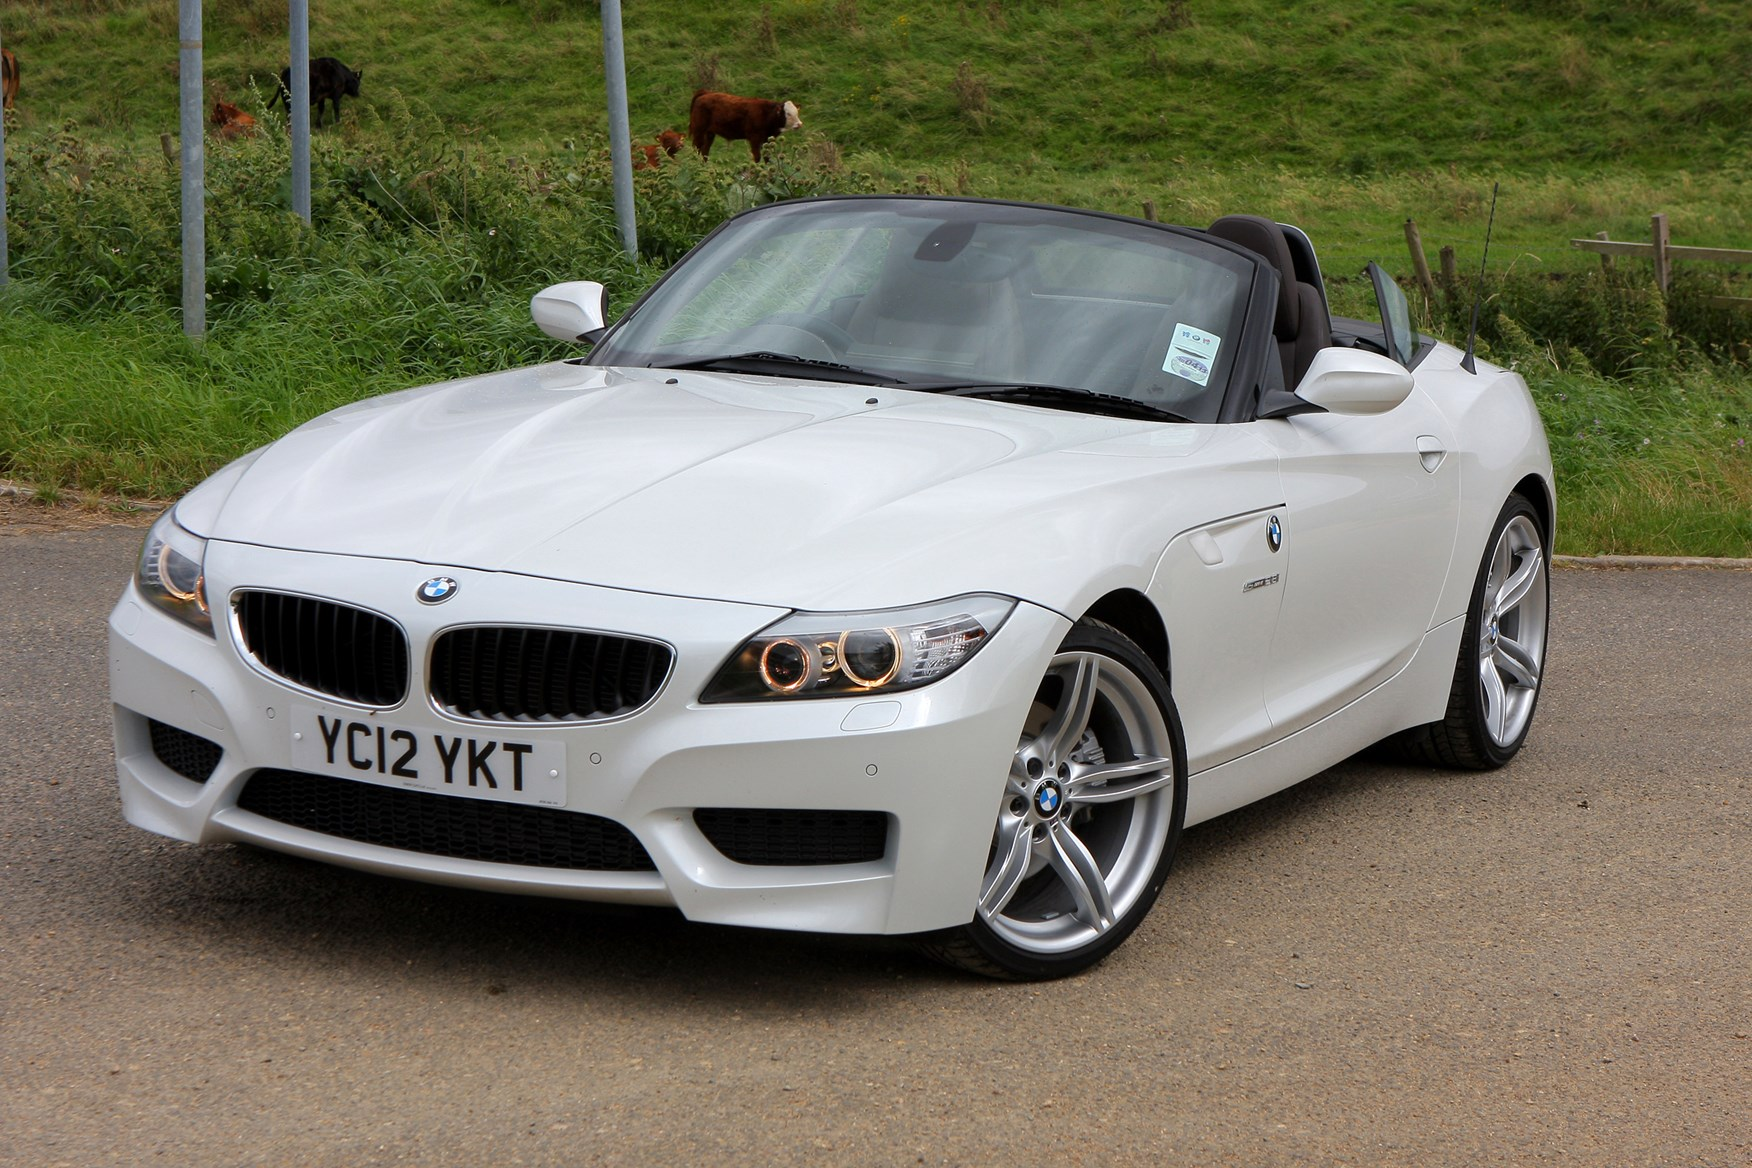 Bmw Z4 28i Review Bmw Z4 28i Review Bmw Zi And 35is Review